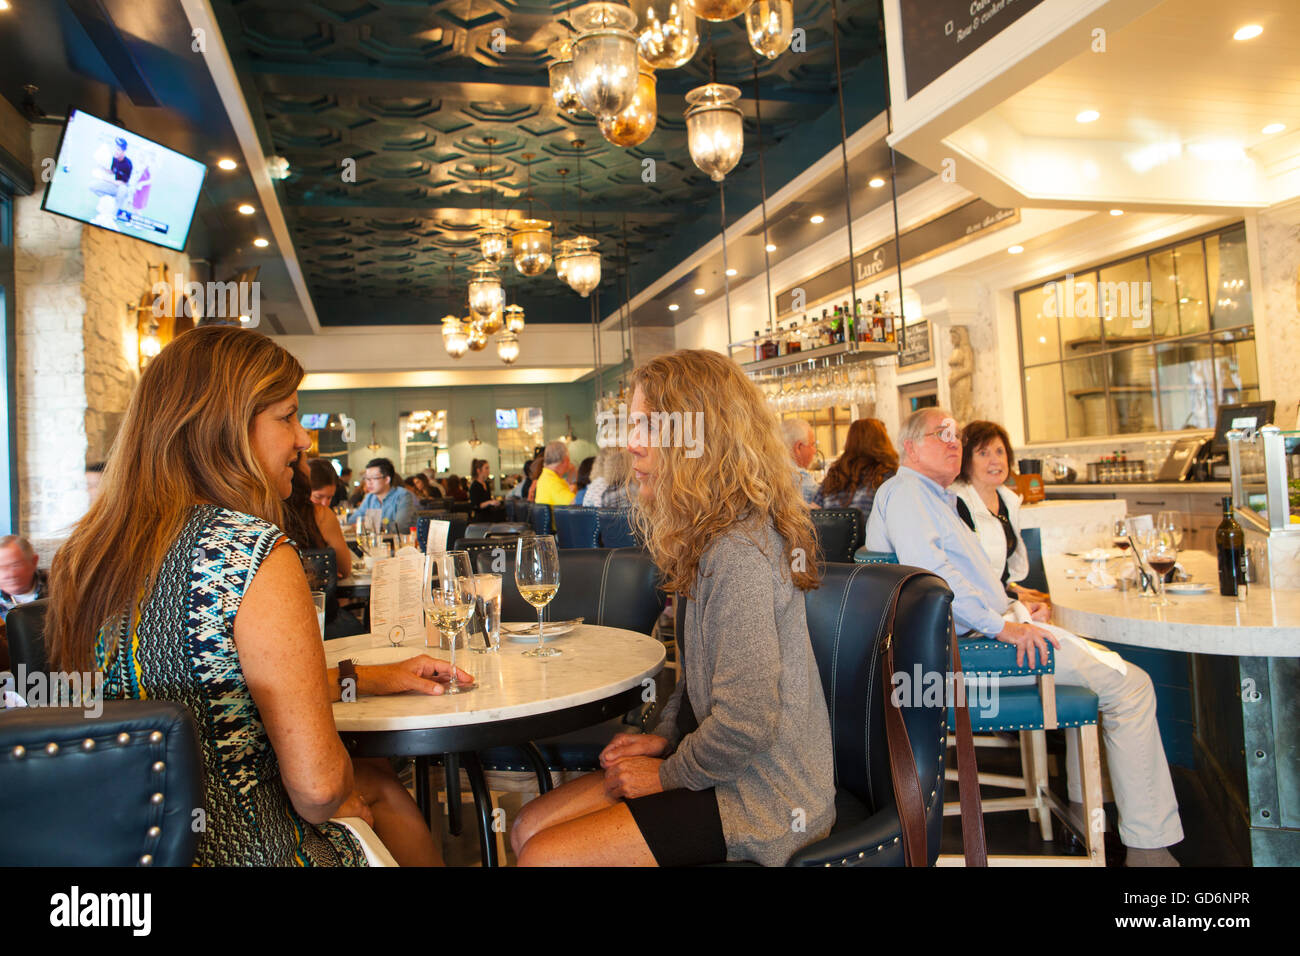 guests dining at Lure Fish House and Oyster Bar during Happy Hour, Santa Barbara, California - Stock Image